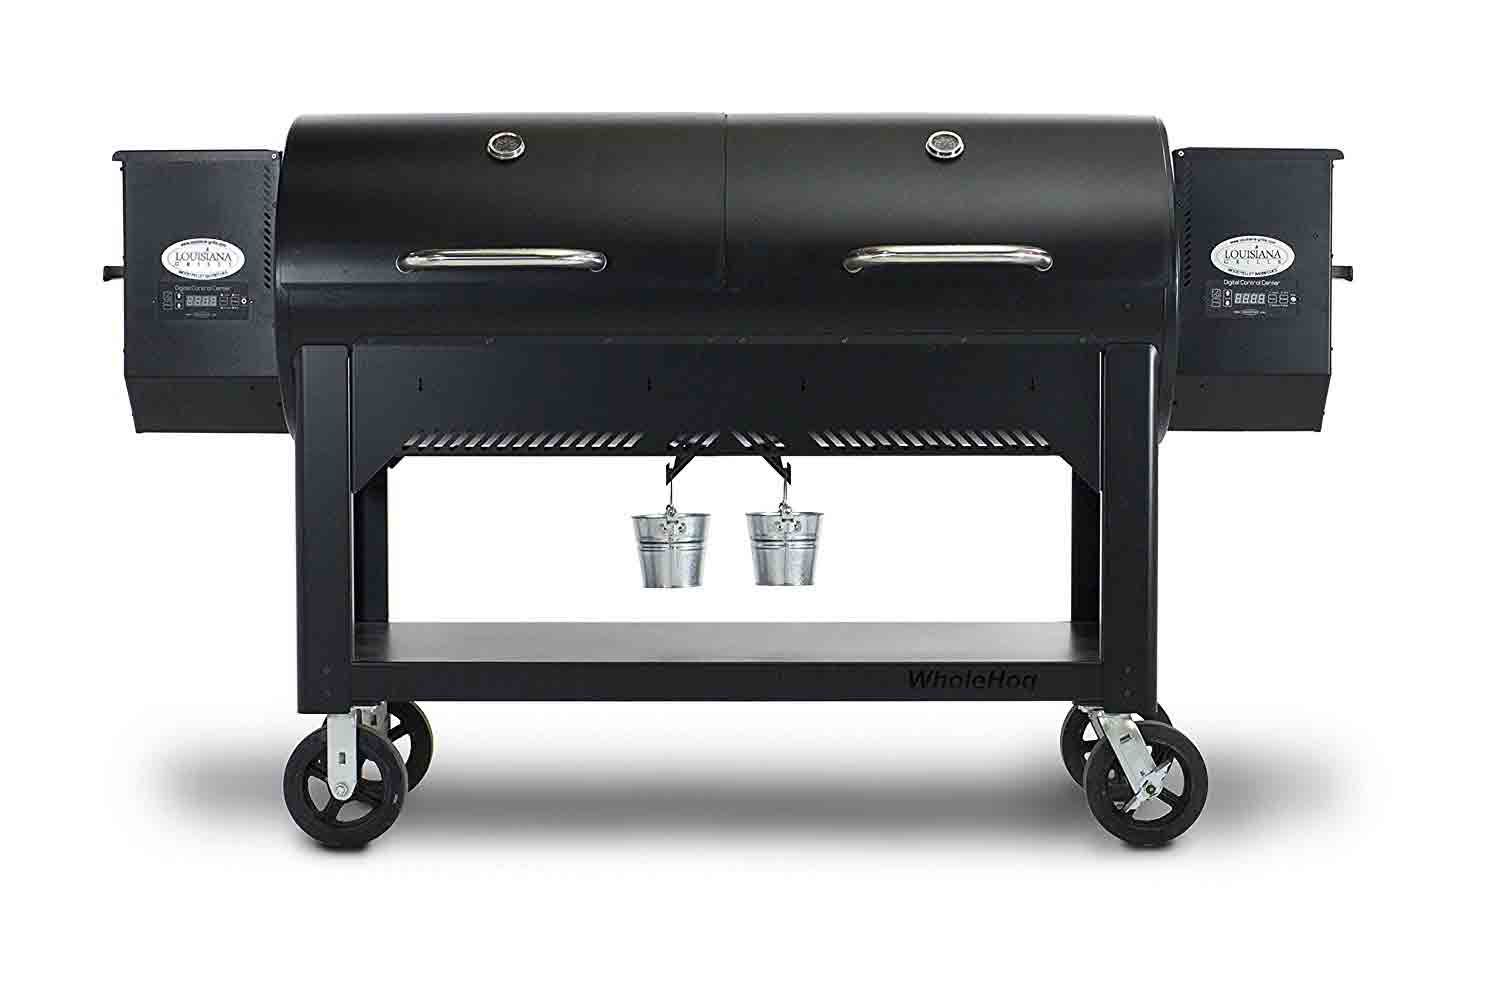 The 10 Best High-End Pellet Grills to Buy in 2018